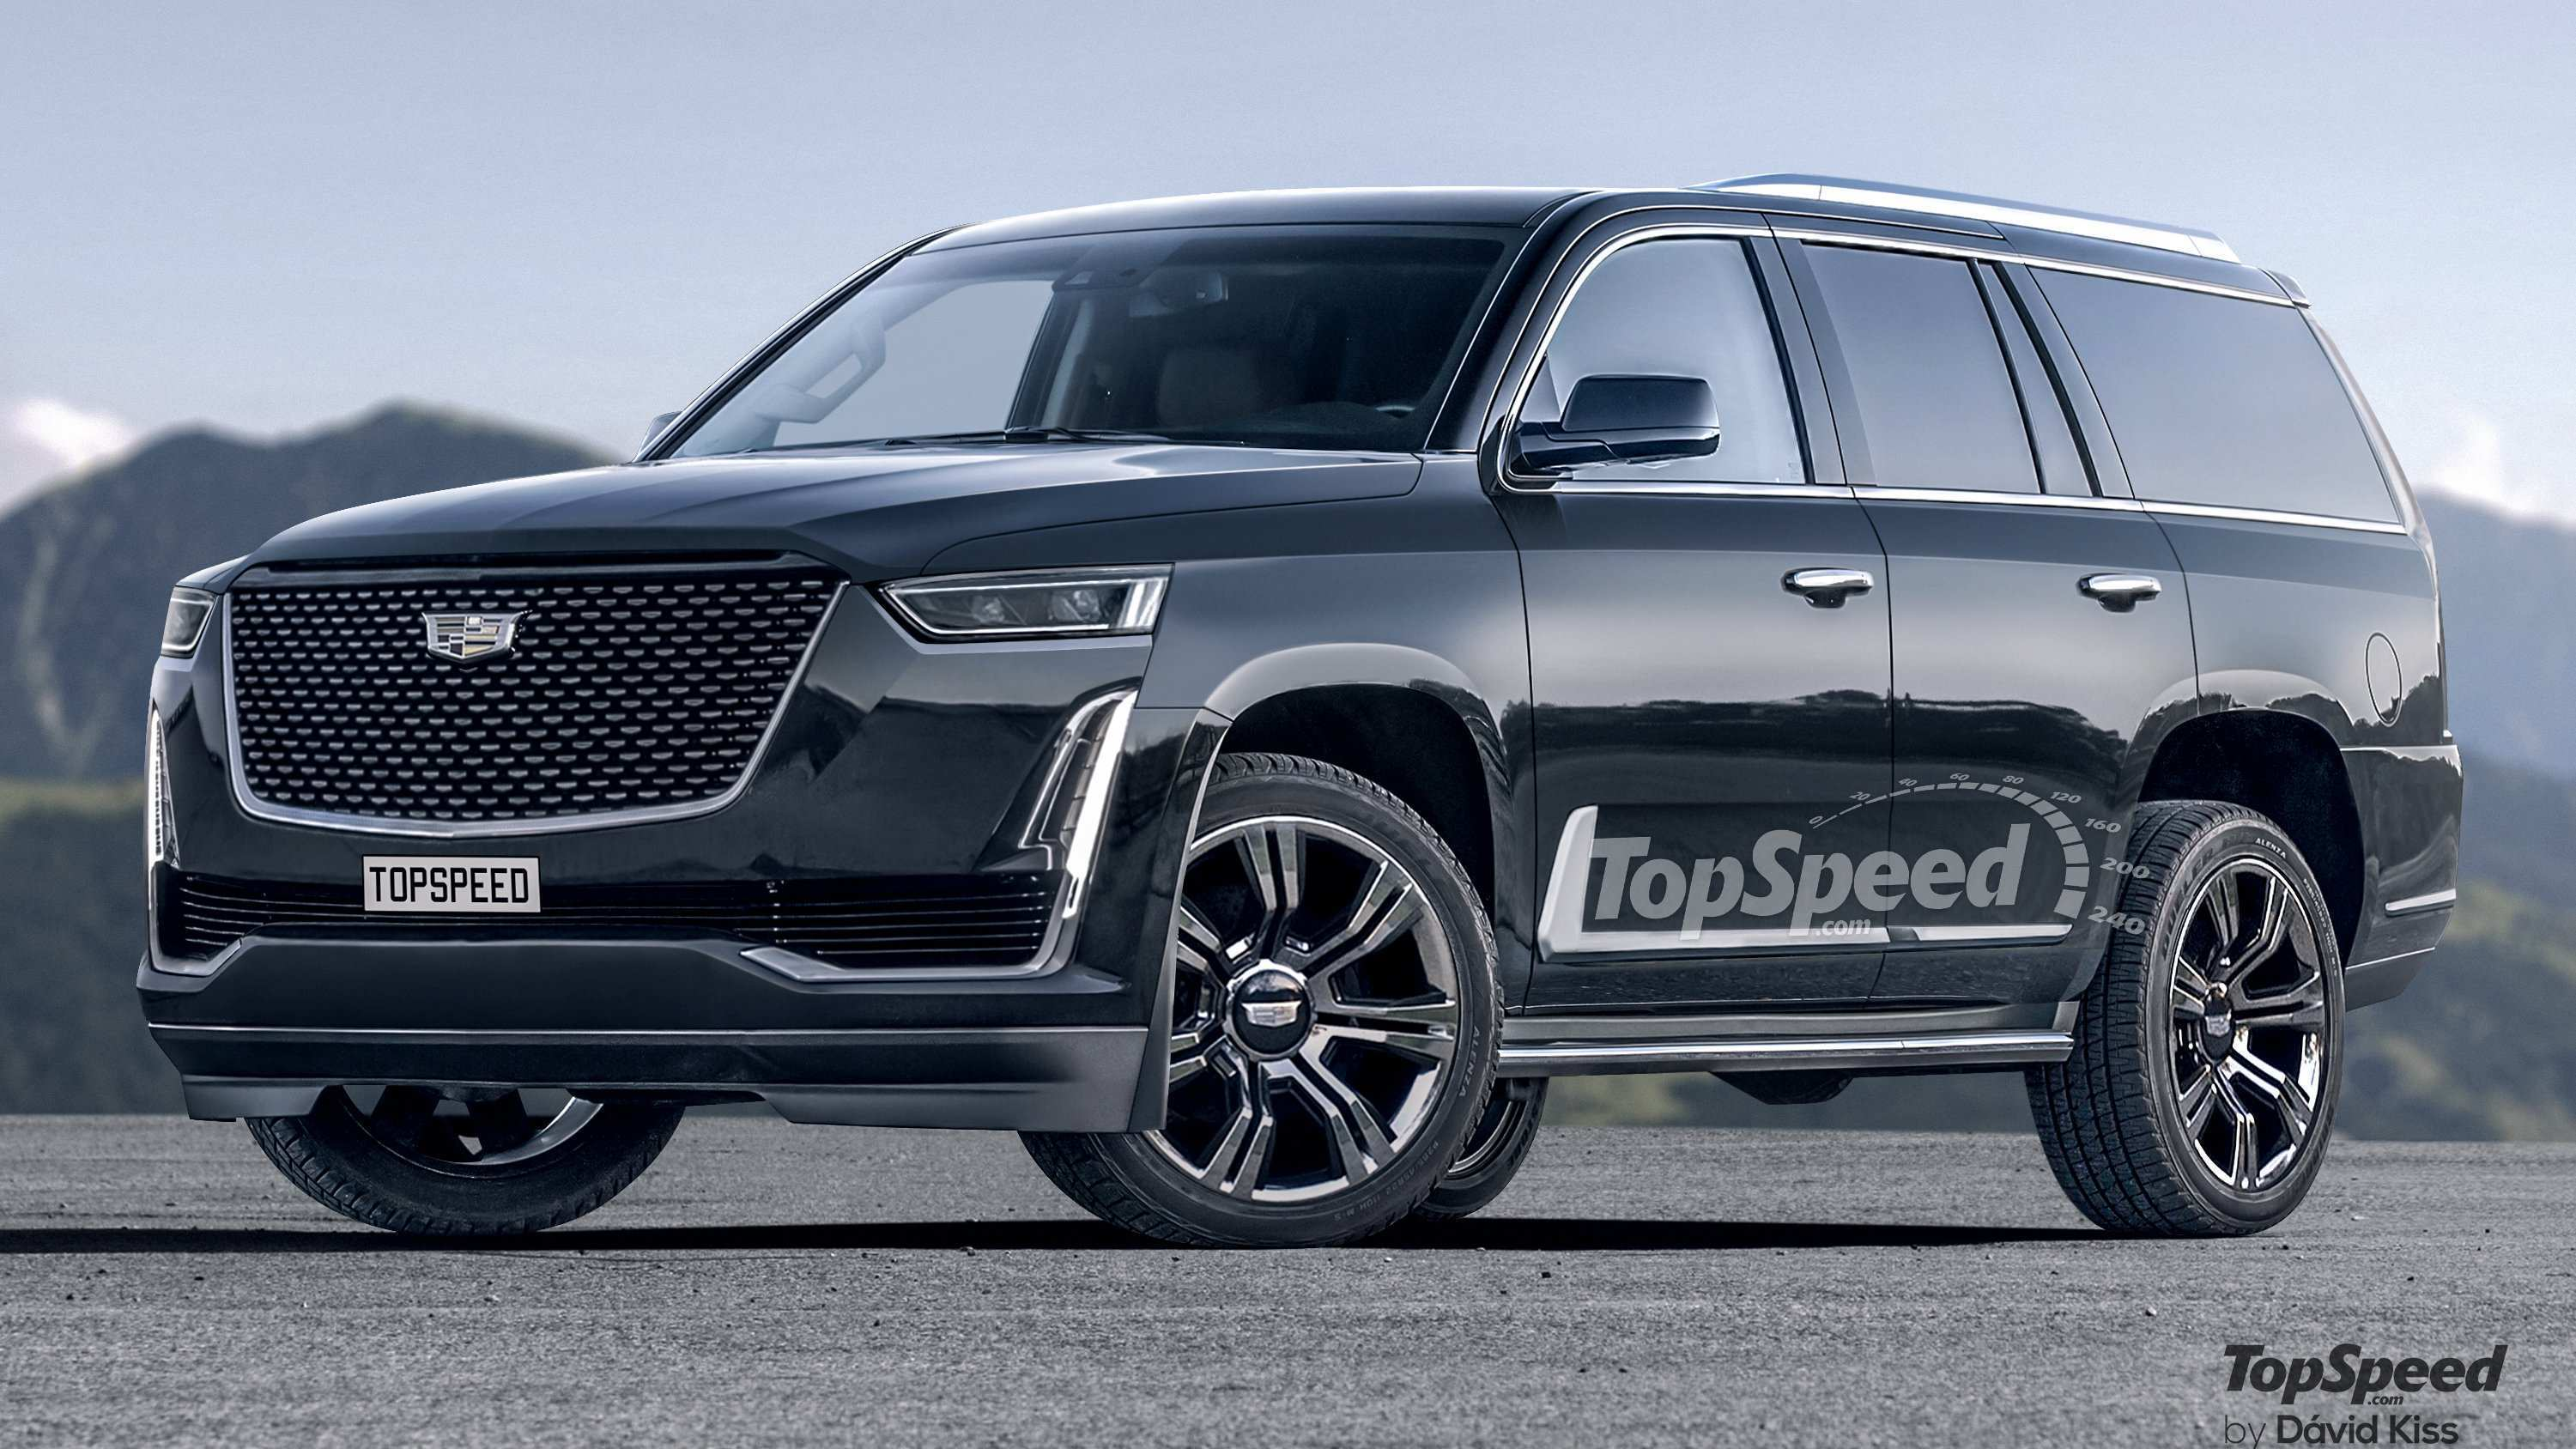 58 Best Review 2020 Cadillac Escalade Ext Reviews with 2020 Cadillac Escalade Ext